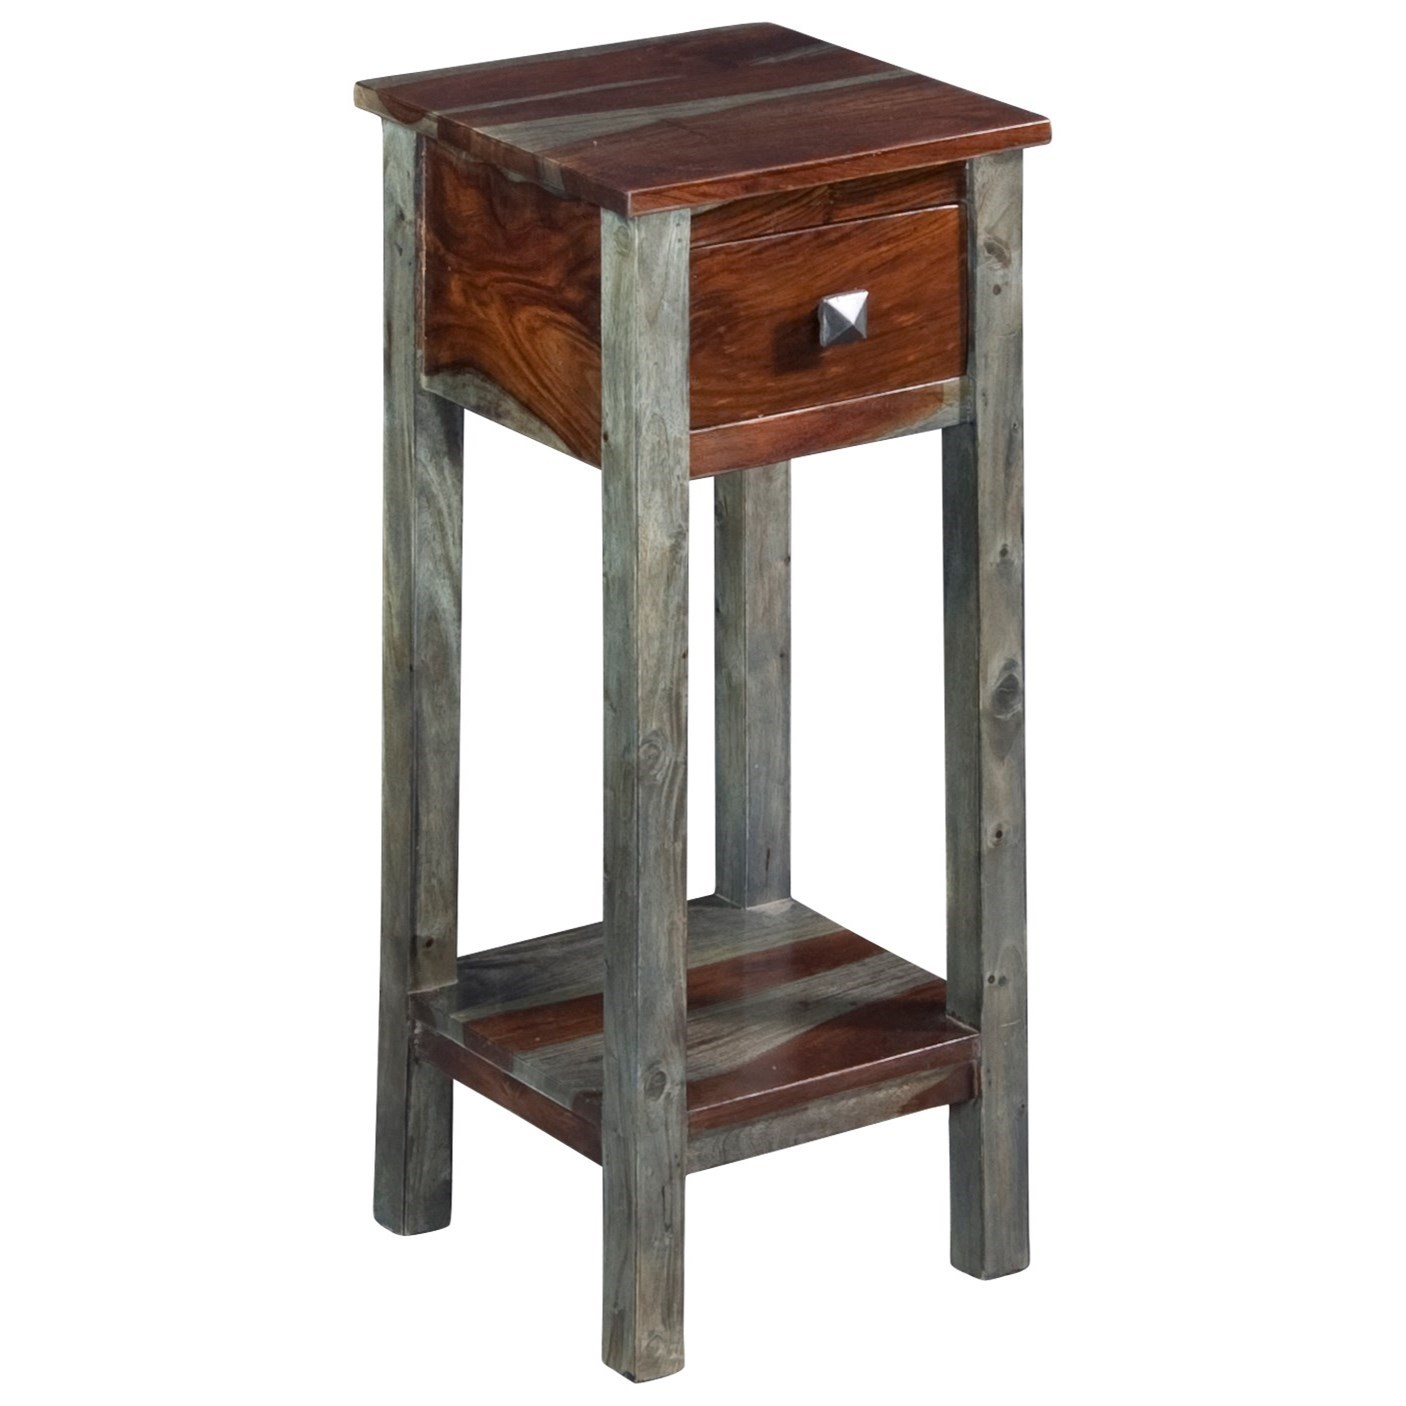 Coast to Coast Imports Grayson One Drawer Pedestal Table - Item Number: 75309